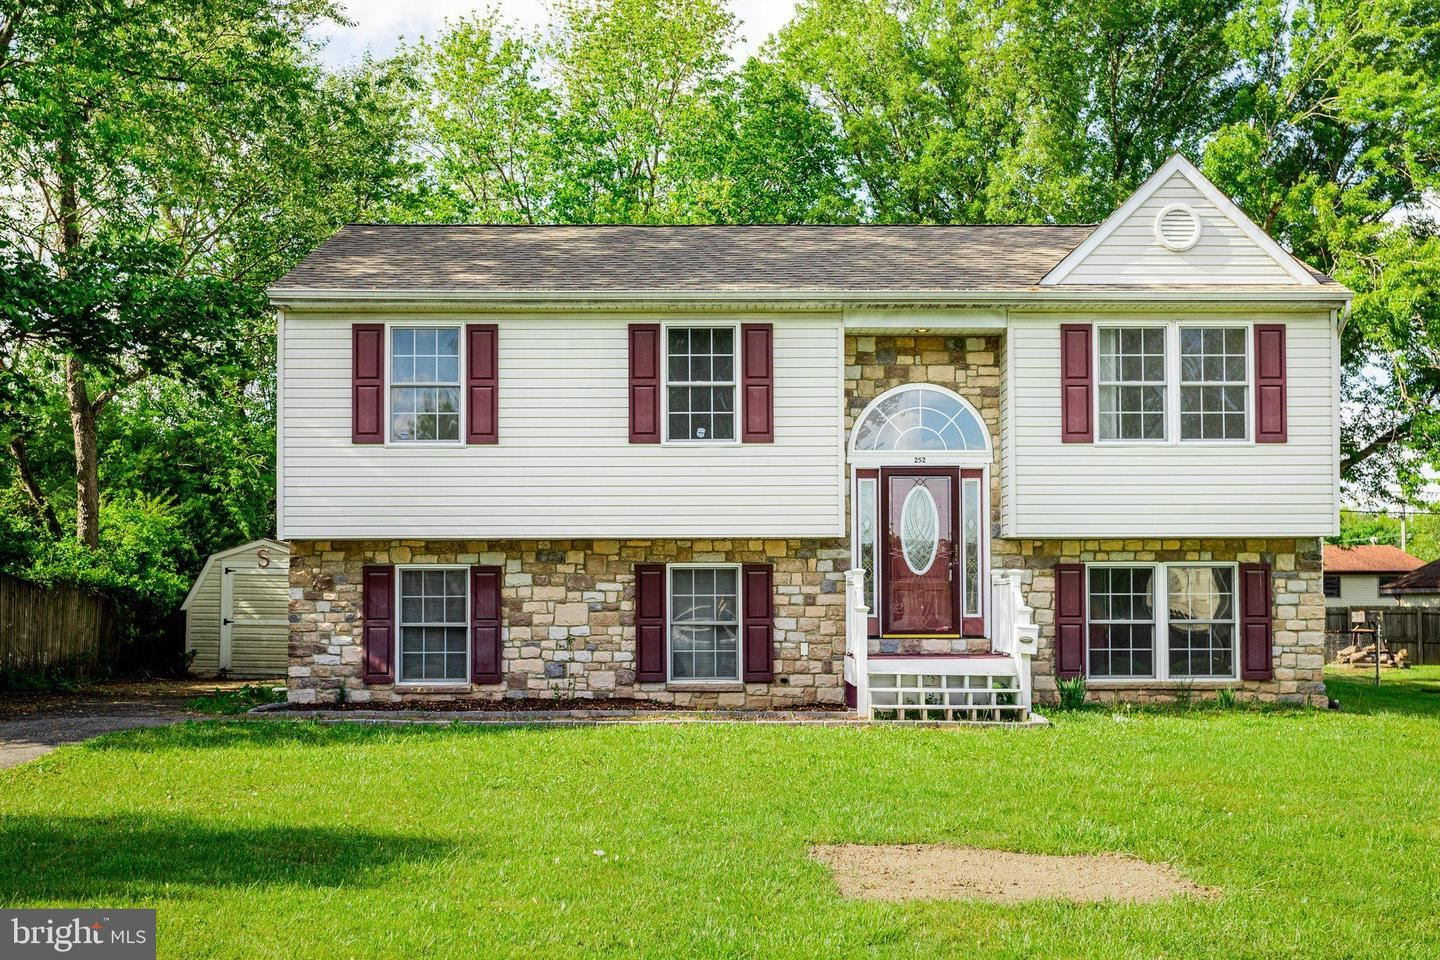 252 SYCAMORE RD, Elkton, MD 21921 - MLS#: MDCC174584